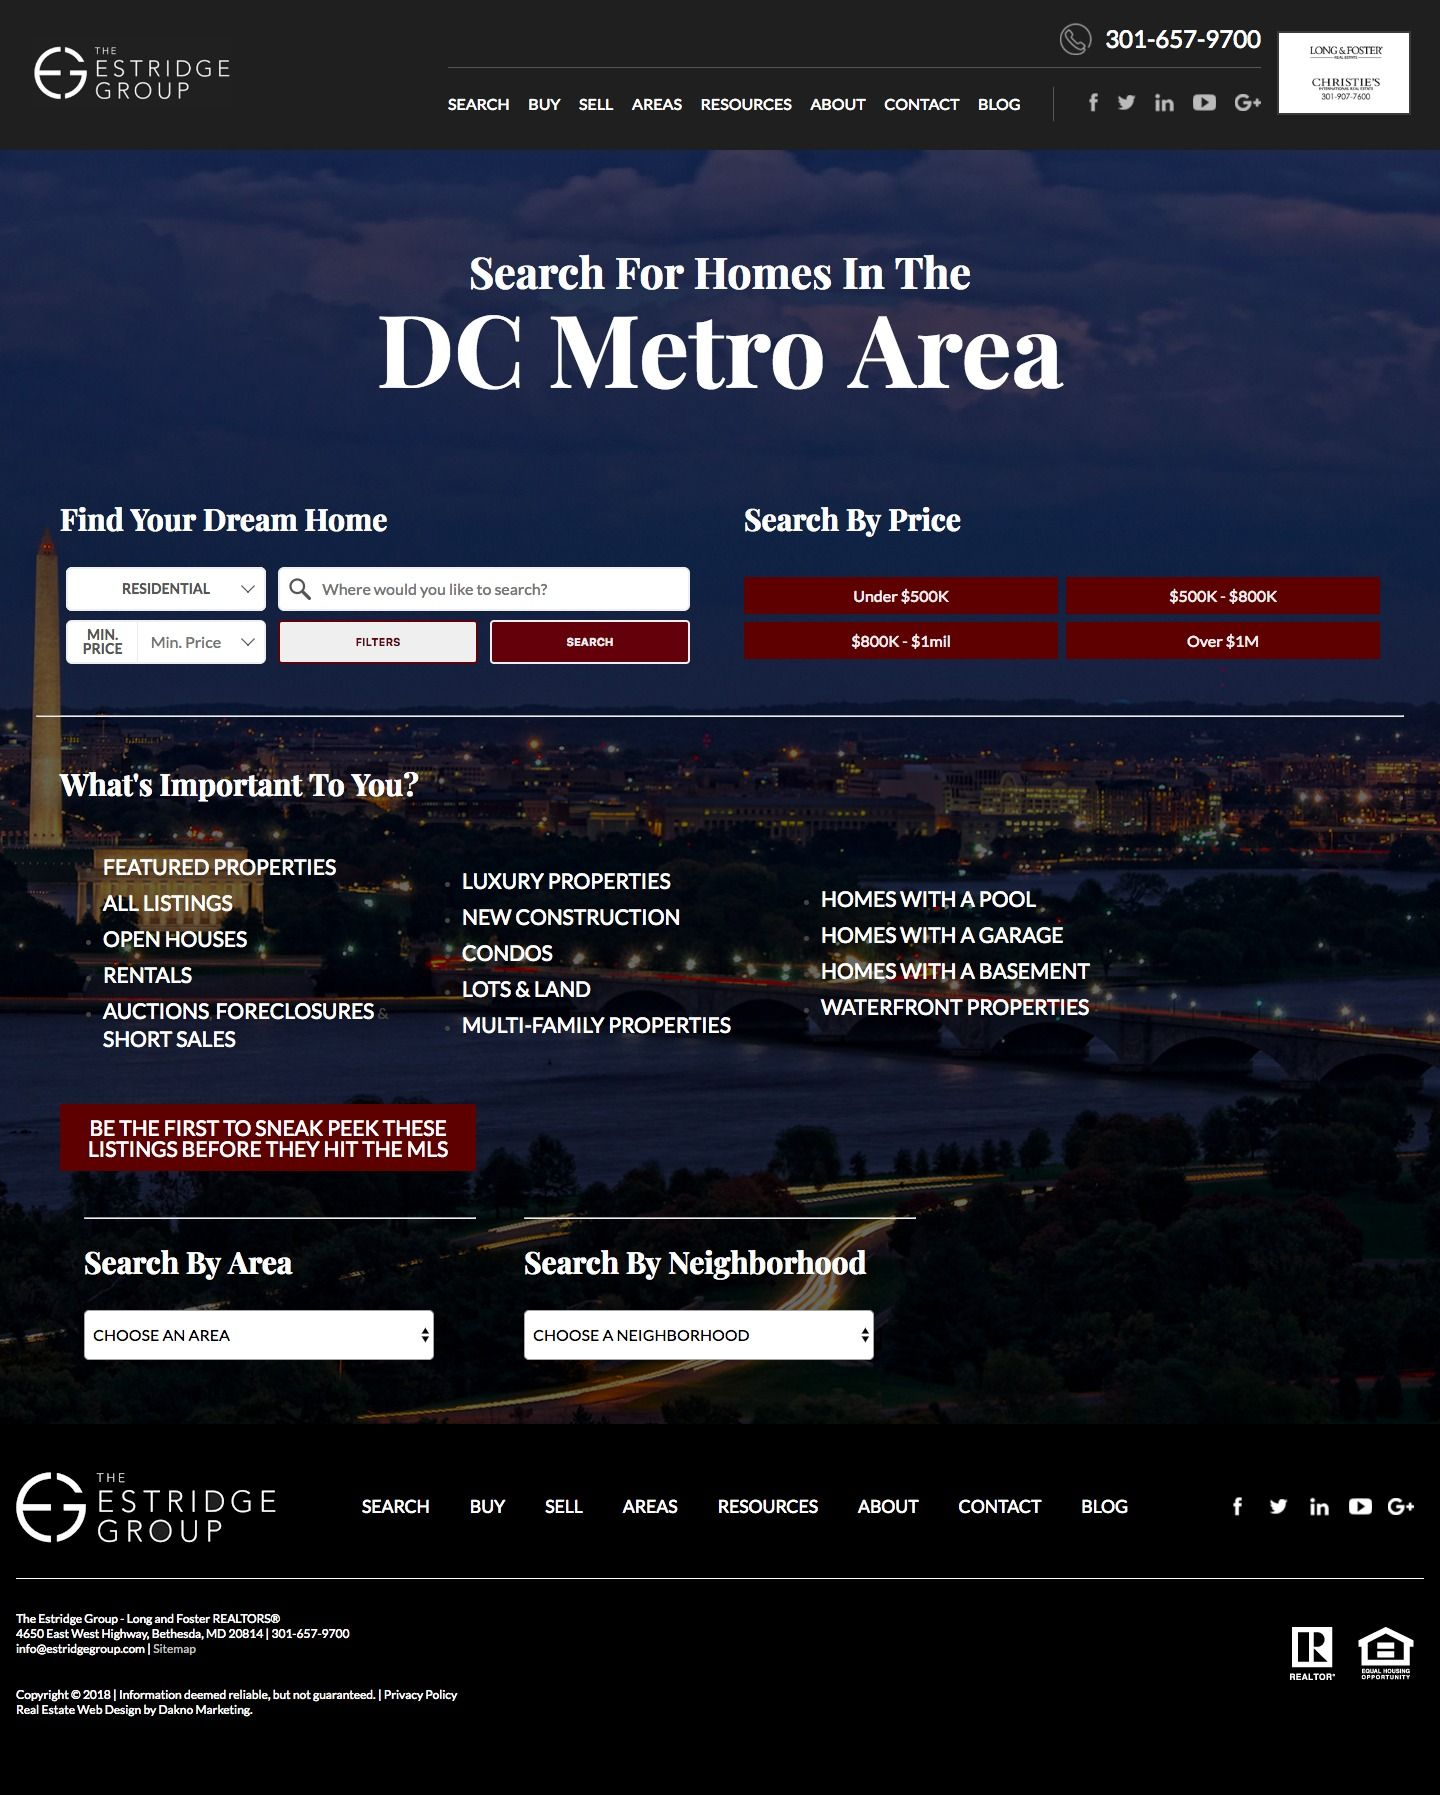 Best Real Estate Search Sites Website In Washington Dc Designs By Dakno Marketing House Search Dc Metro Area Real Estate Search